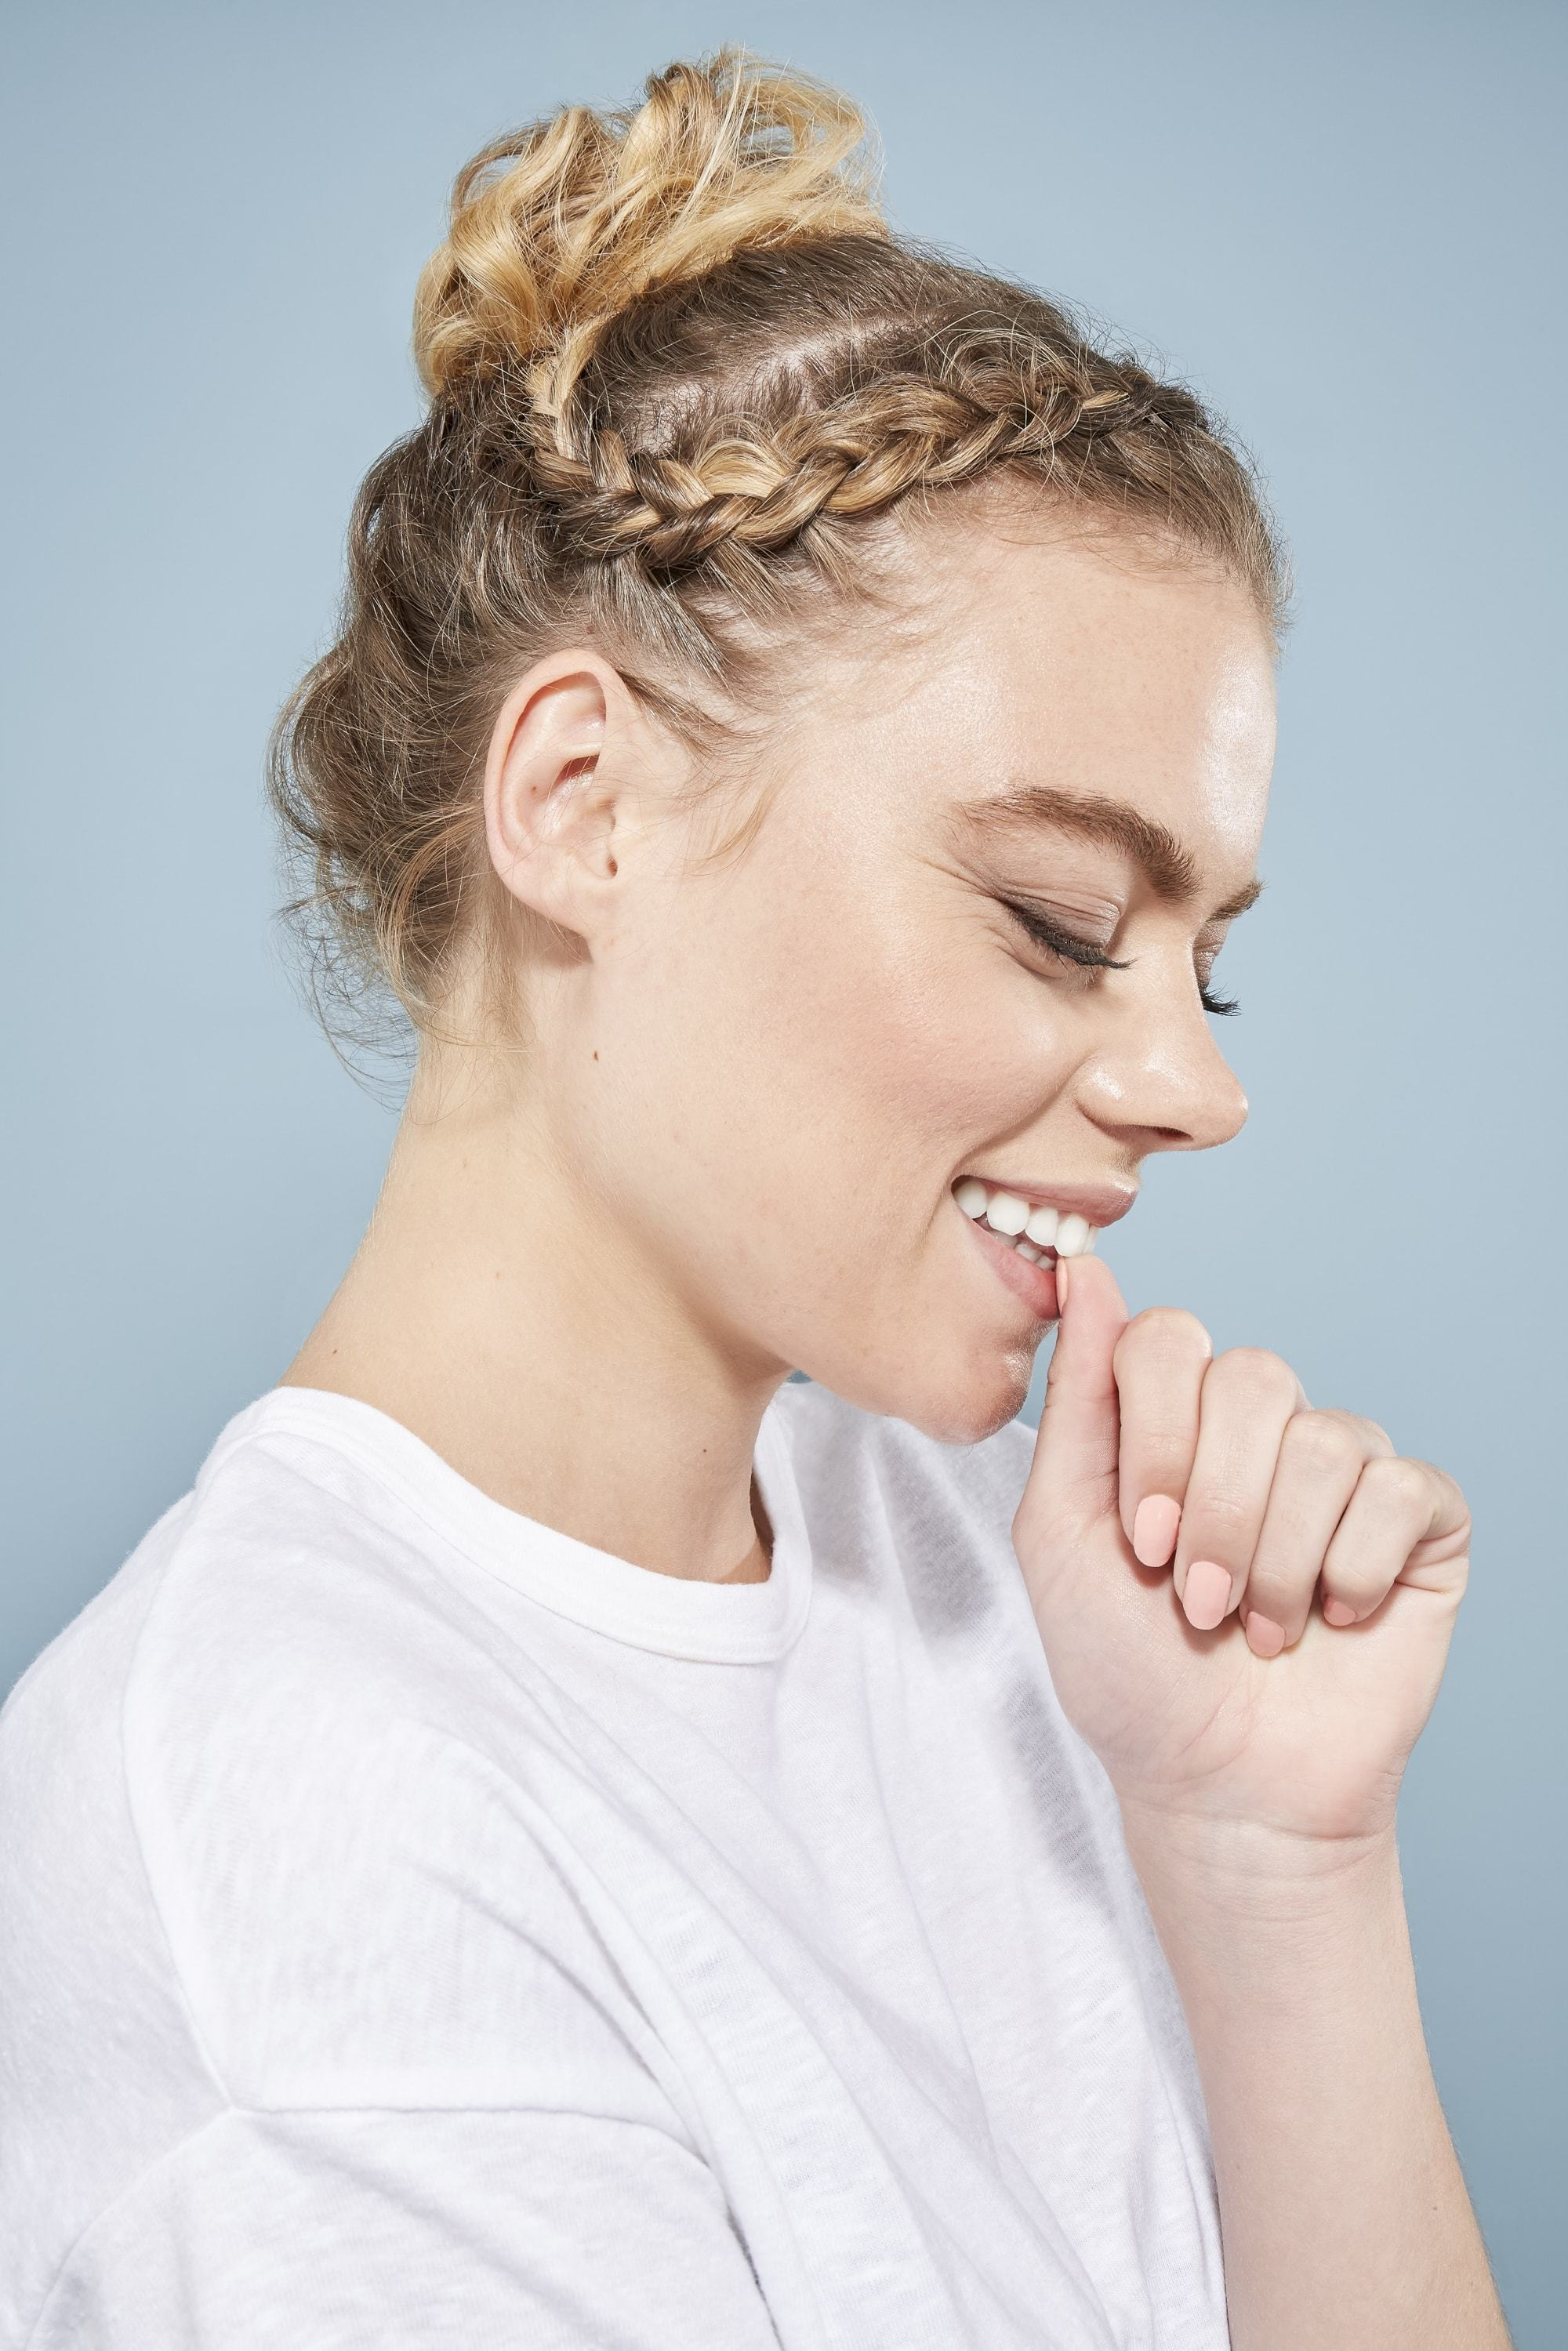 Updos with braids: Close up shot of a woman with headband braid into a messy bun updo.